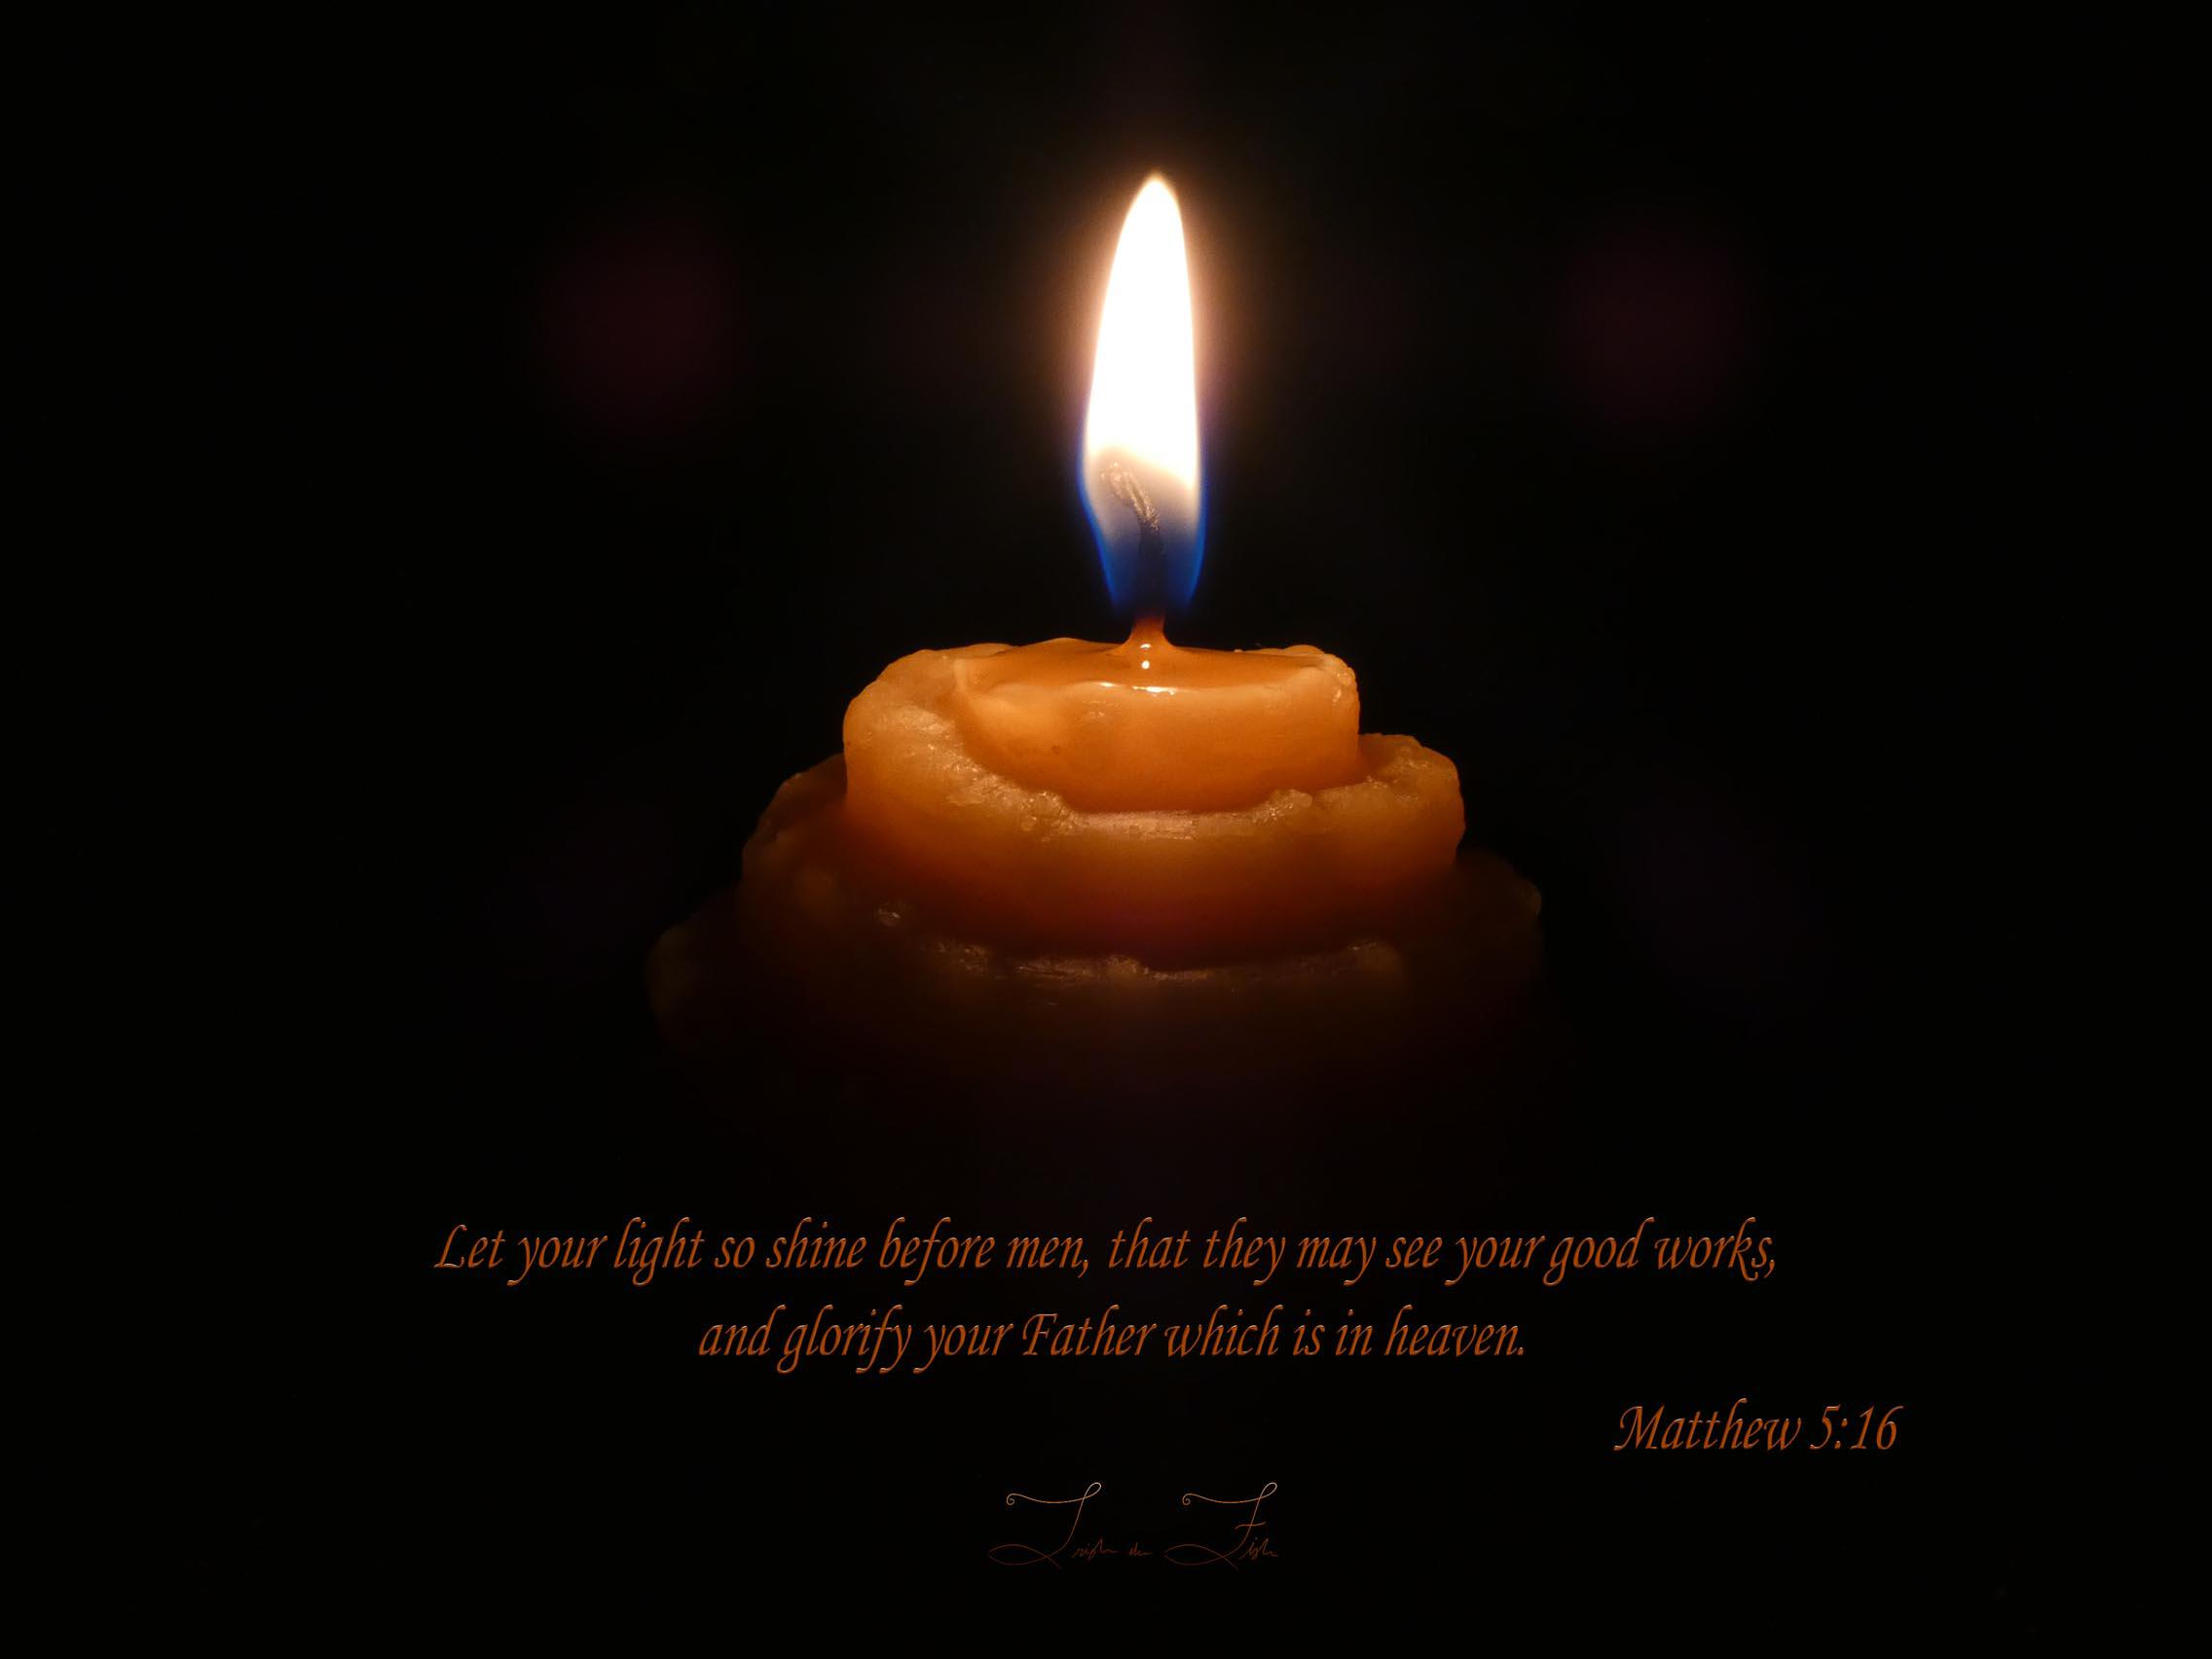 Beeswax Candle Flame Bible Verse Matthew 5:16 Let Your Light So Shine